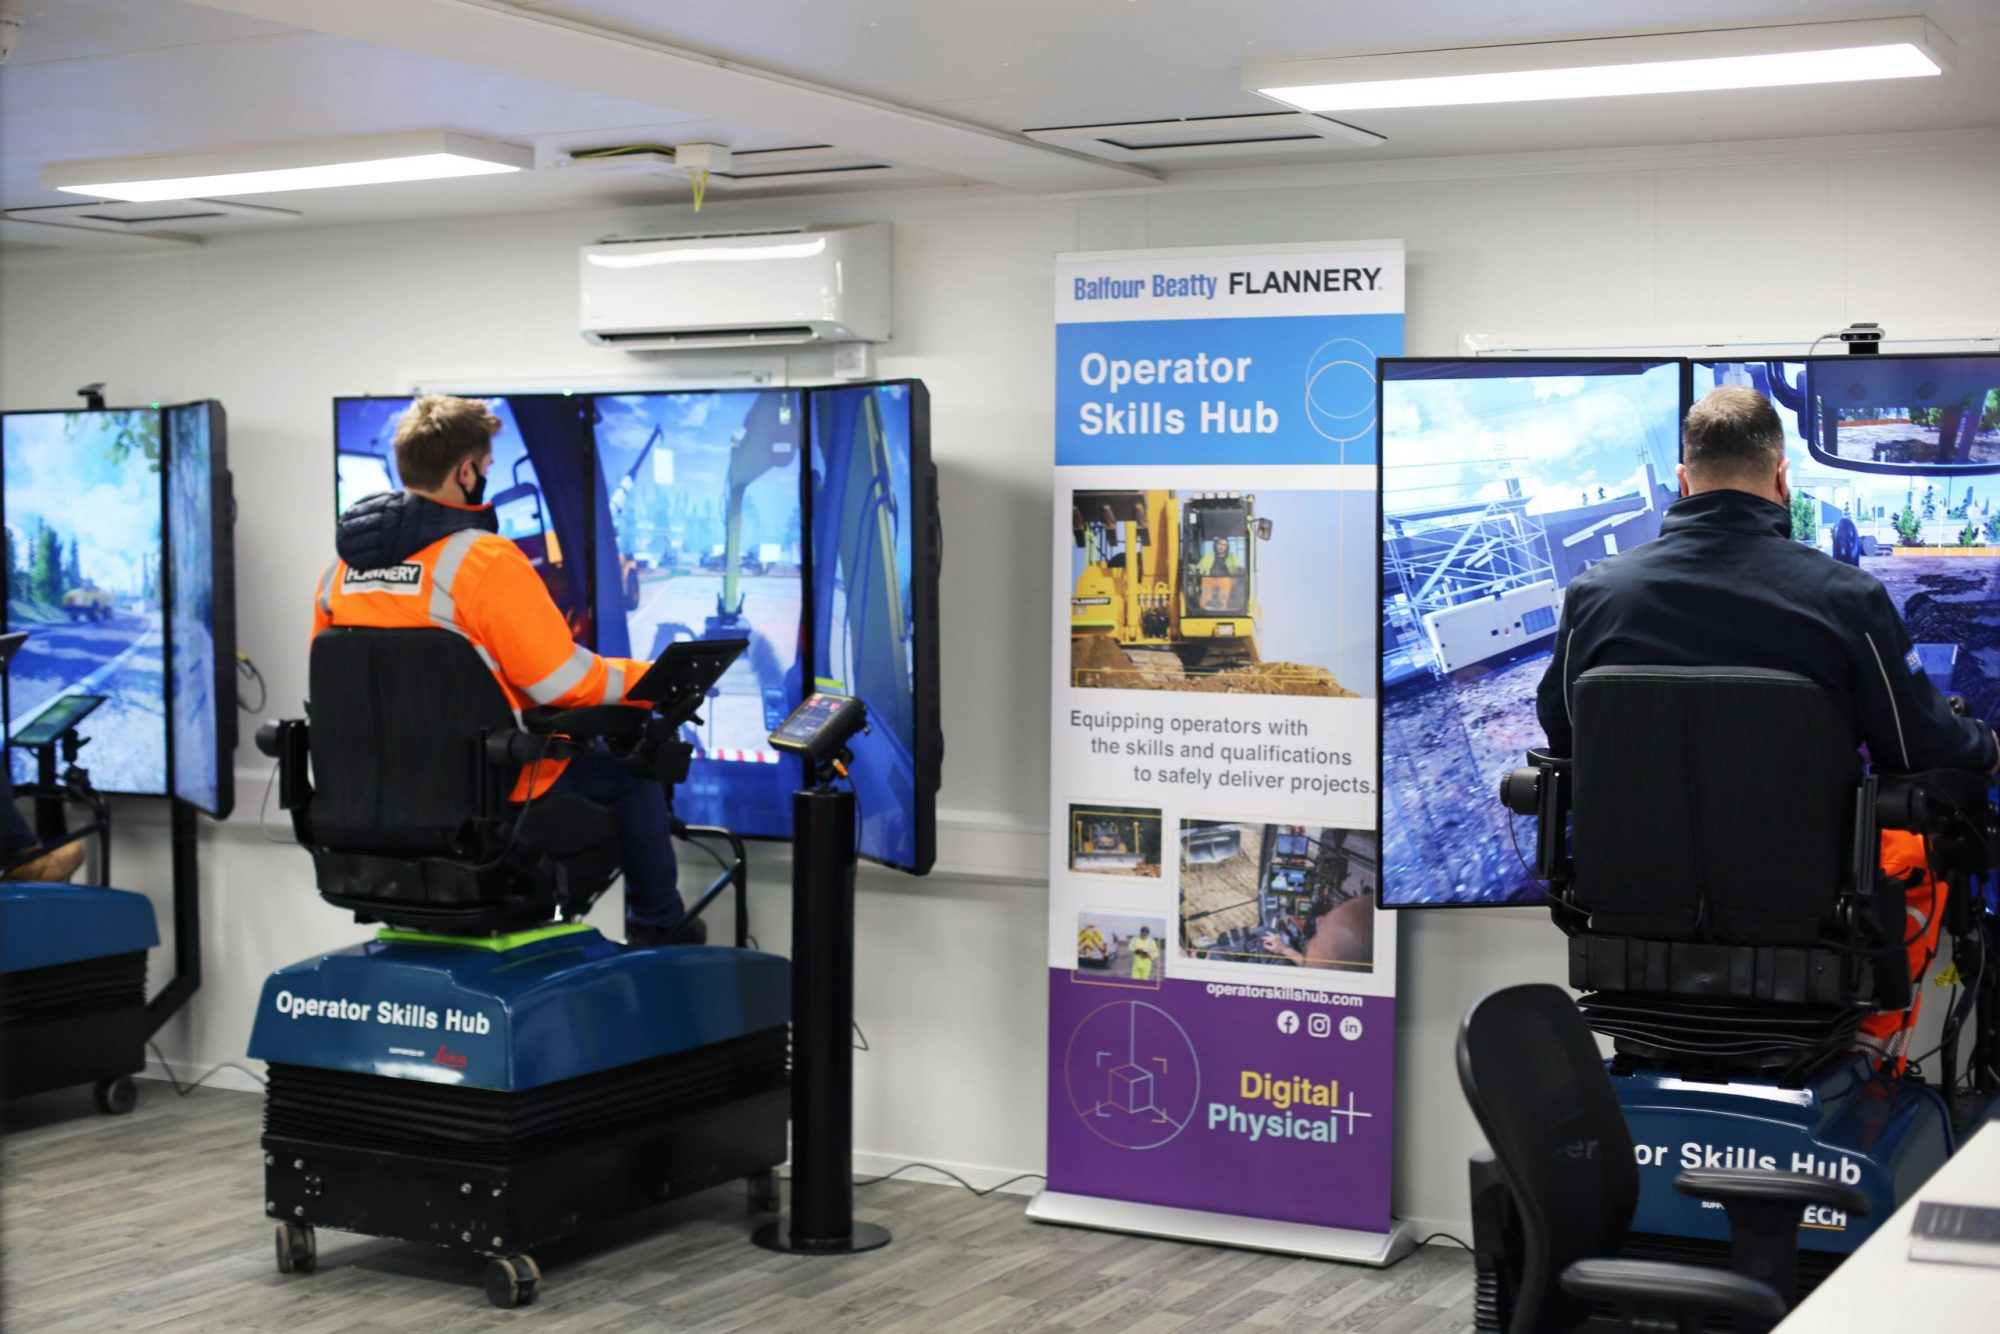 Flannery and Balfour Beatty launch operator skills hub